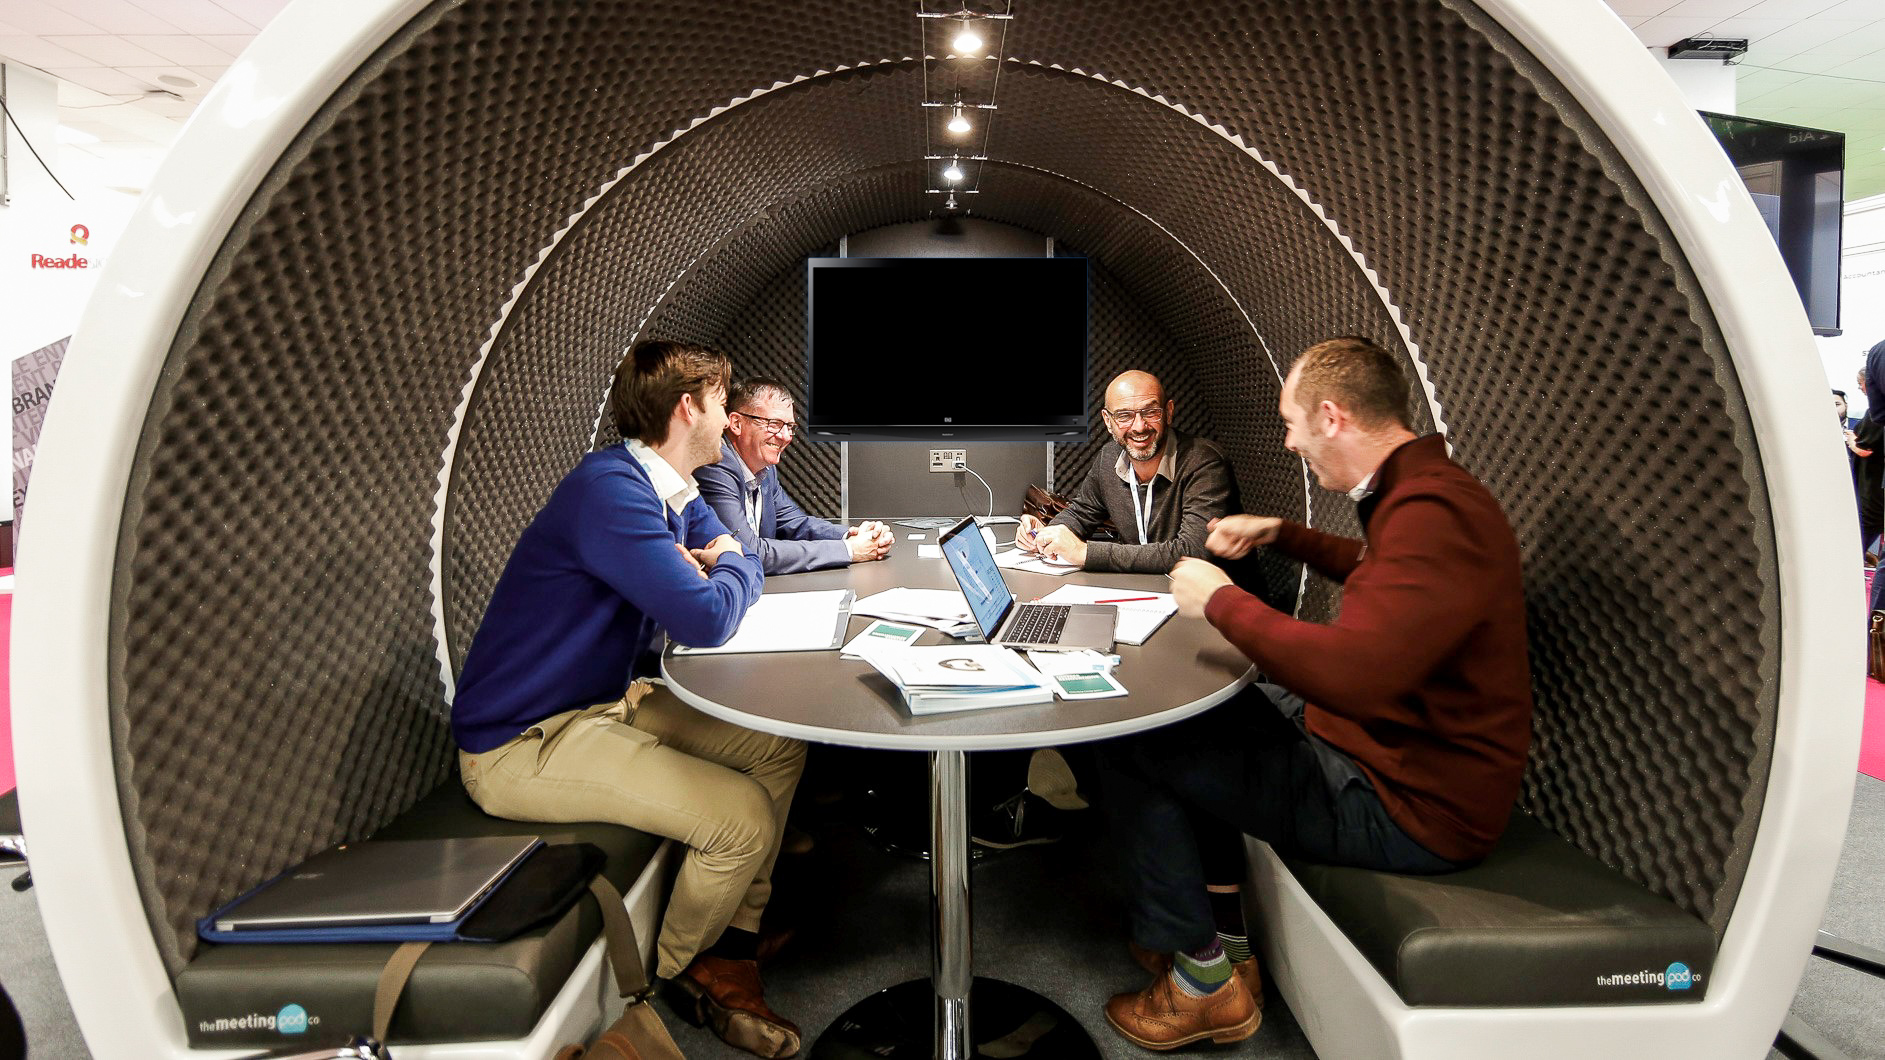 Brainstorming in the Meeting Pod